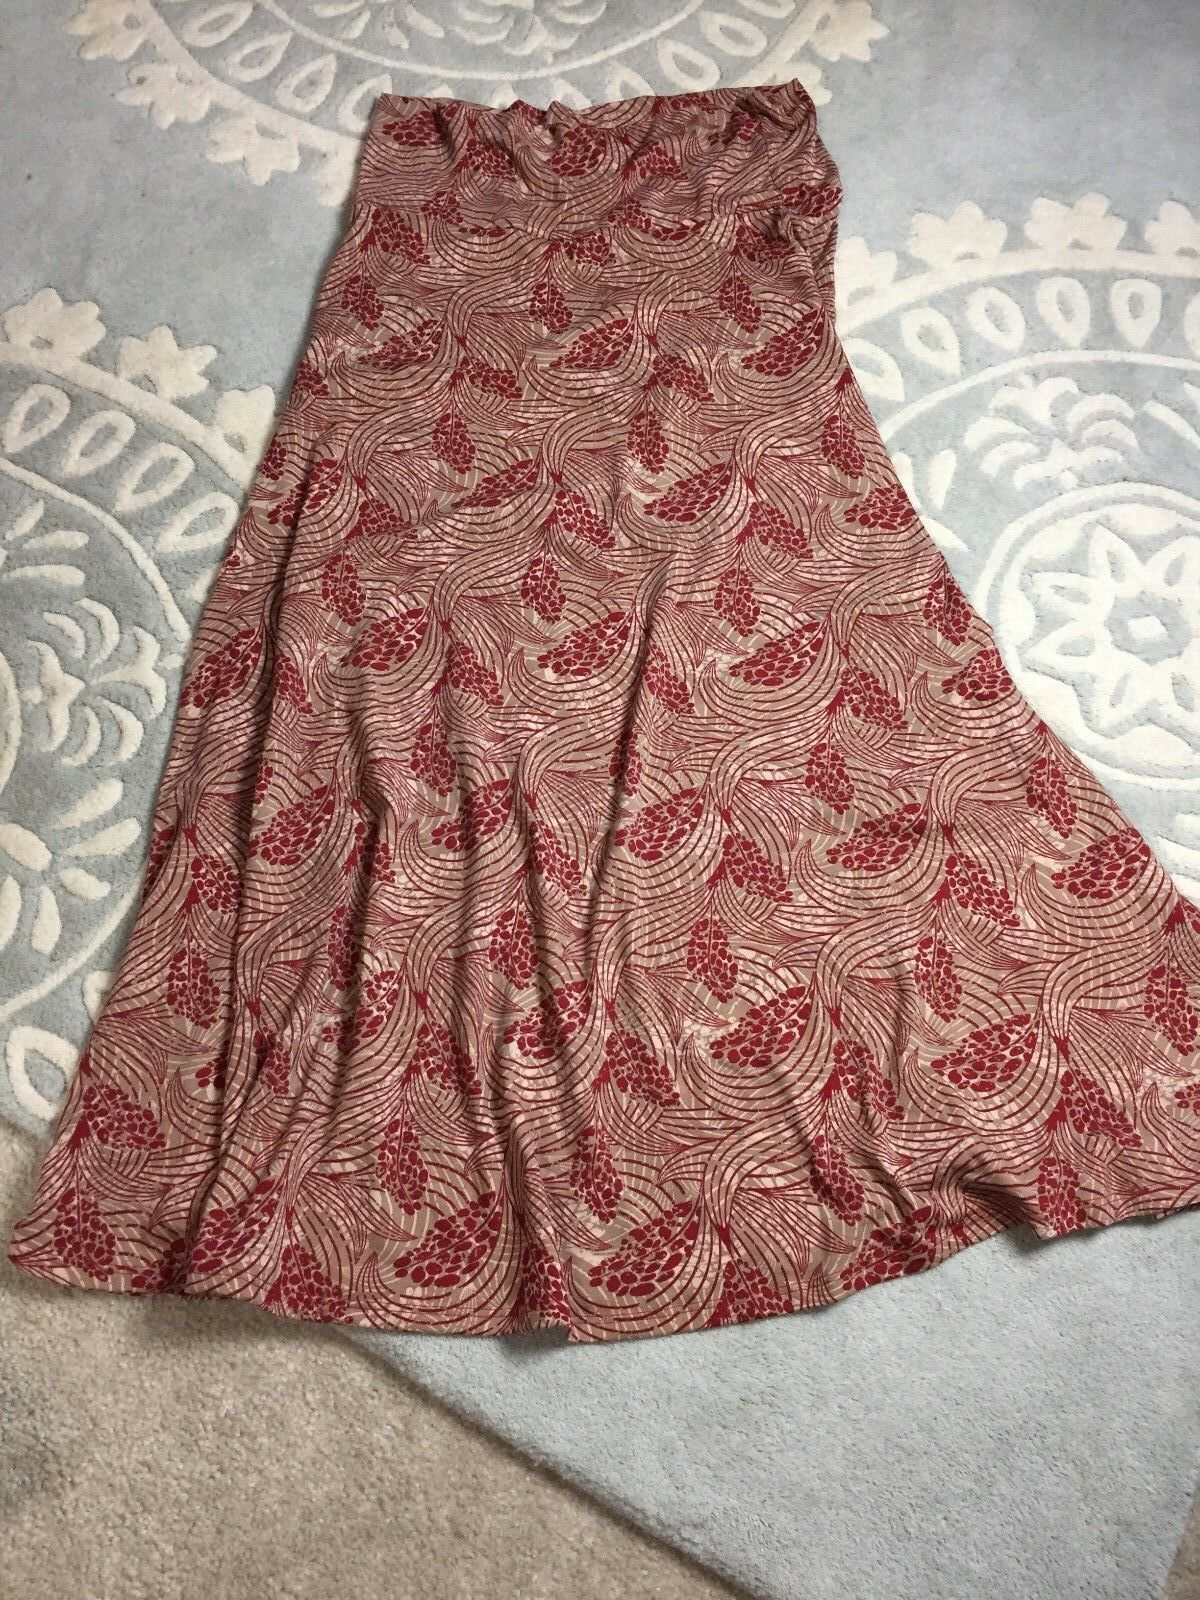 NEW LulaRoe Brown Red Tan Patterned Floral Leaf Maxi Skirt Stretch XL